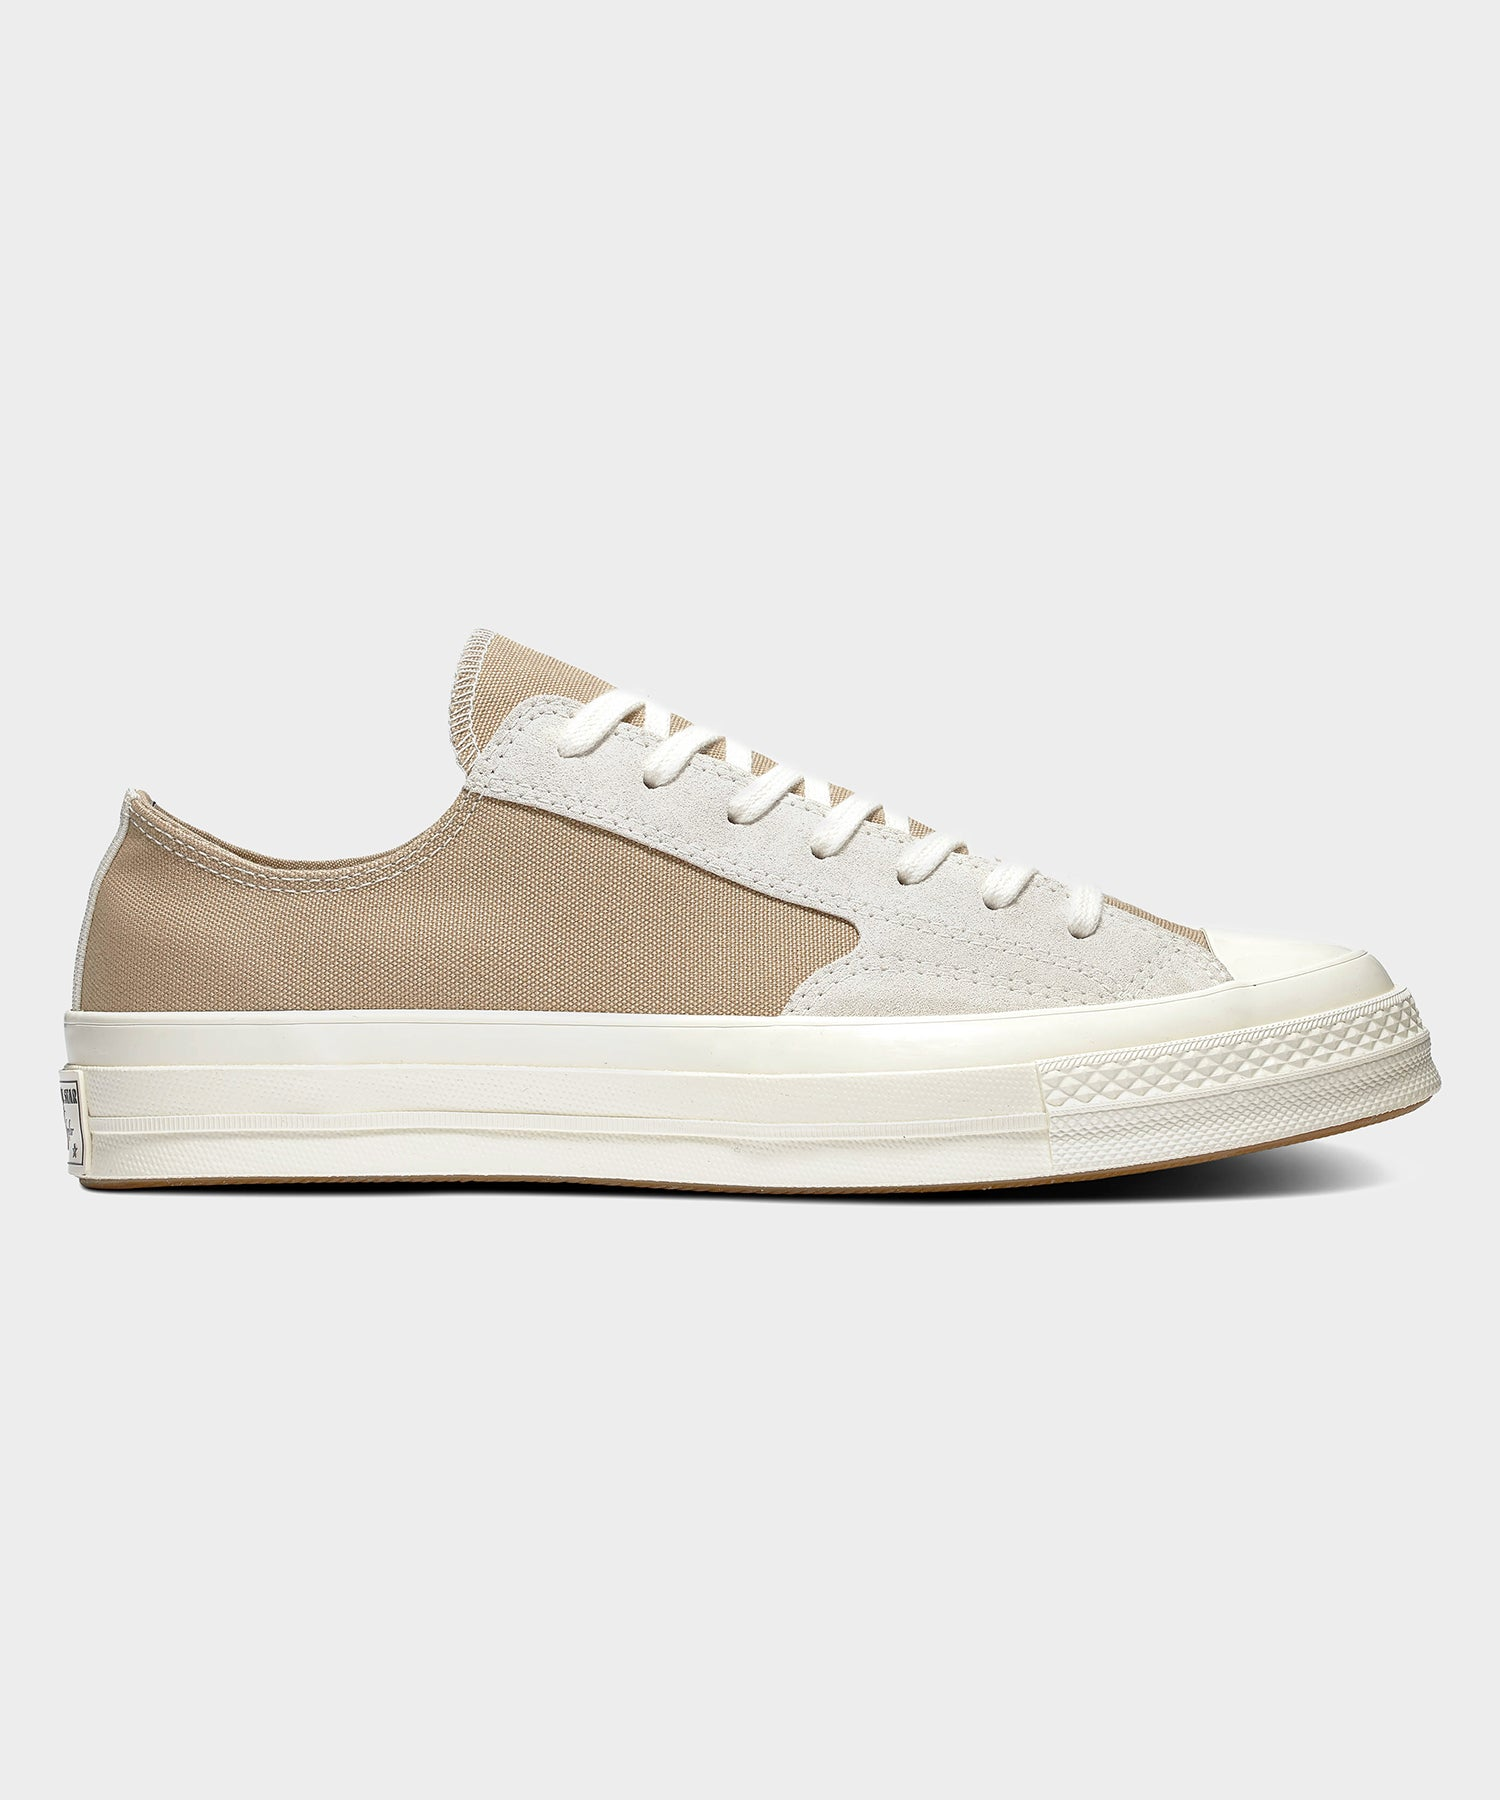 Converse Final Club Chuck 70 Ox in Nomad Khaki